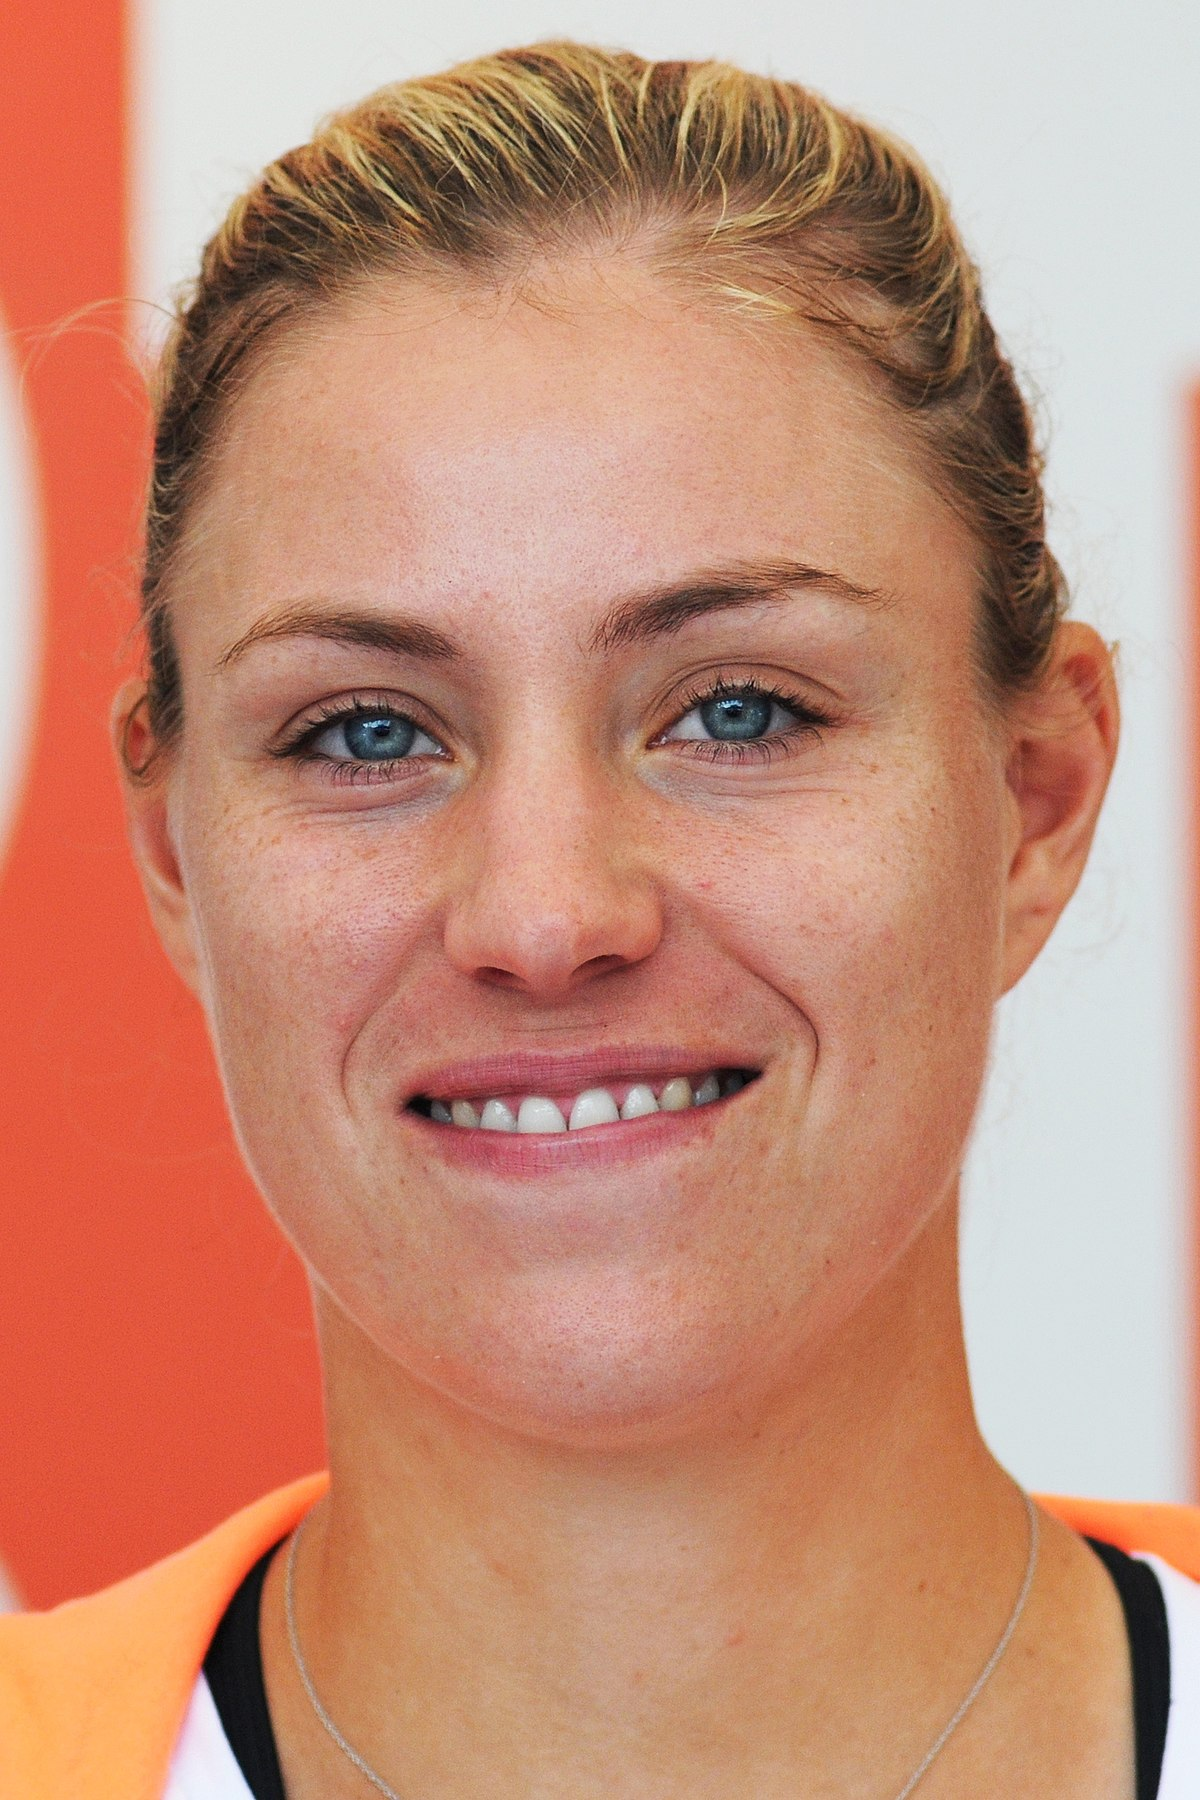 Angelique Kerber Wikipedia